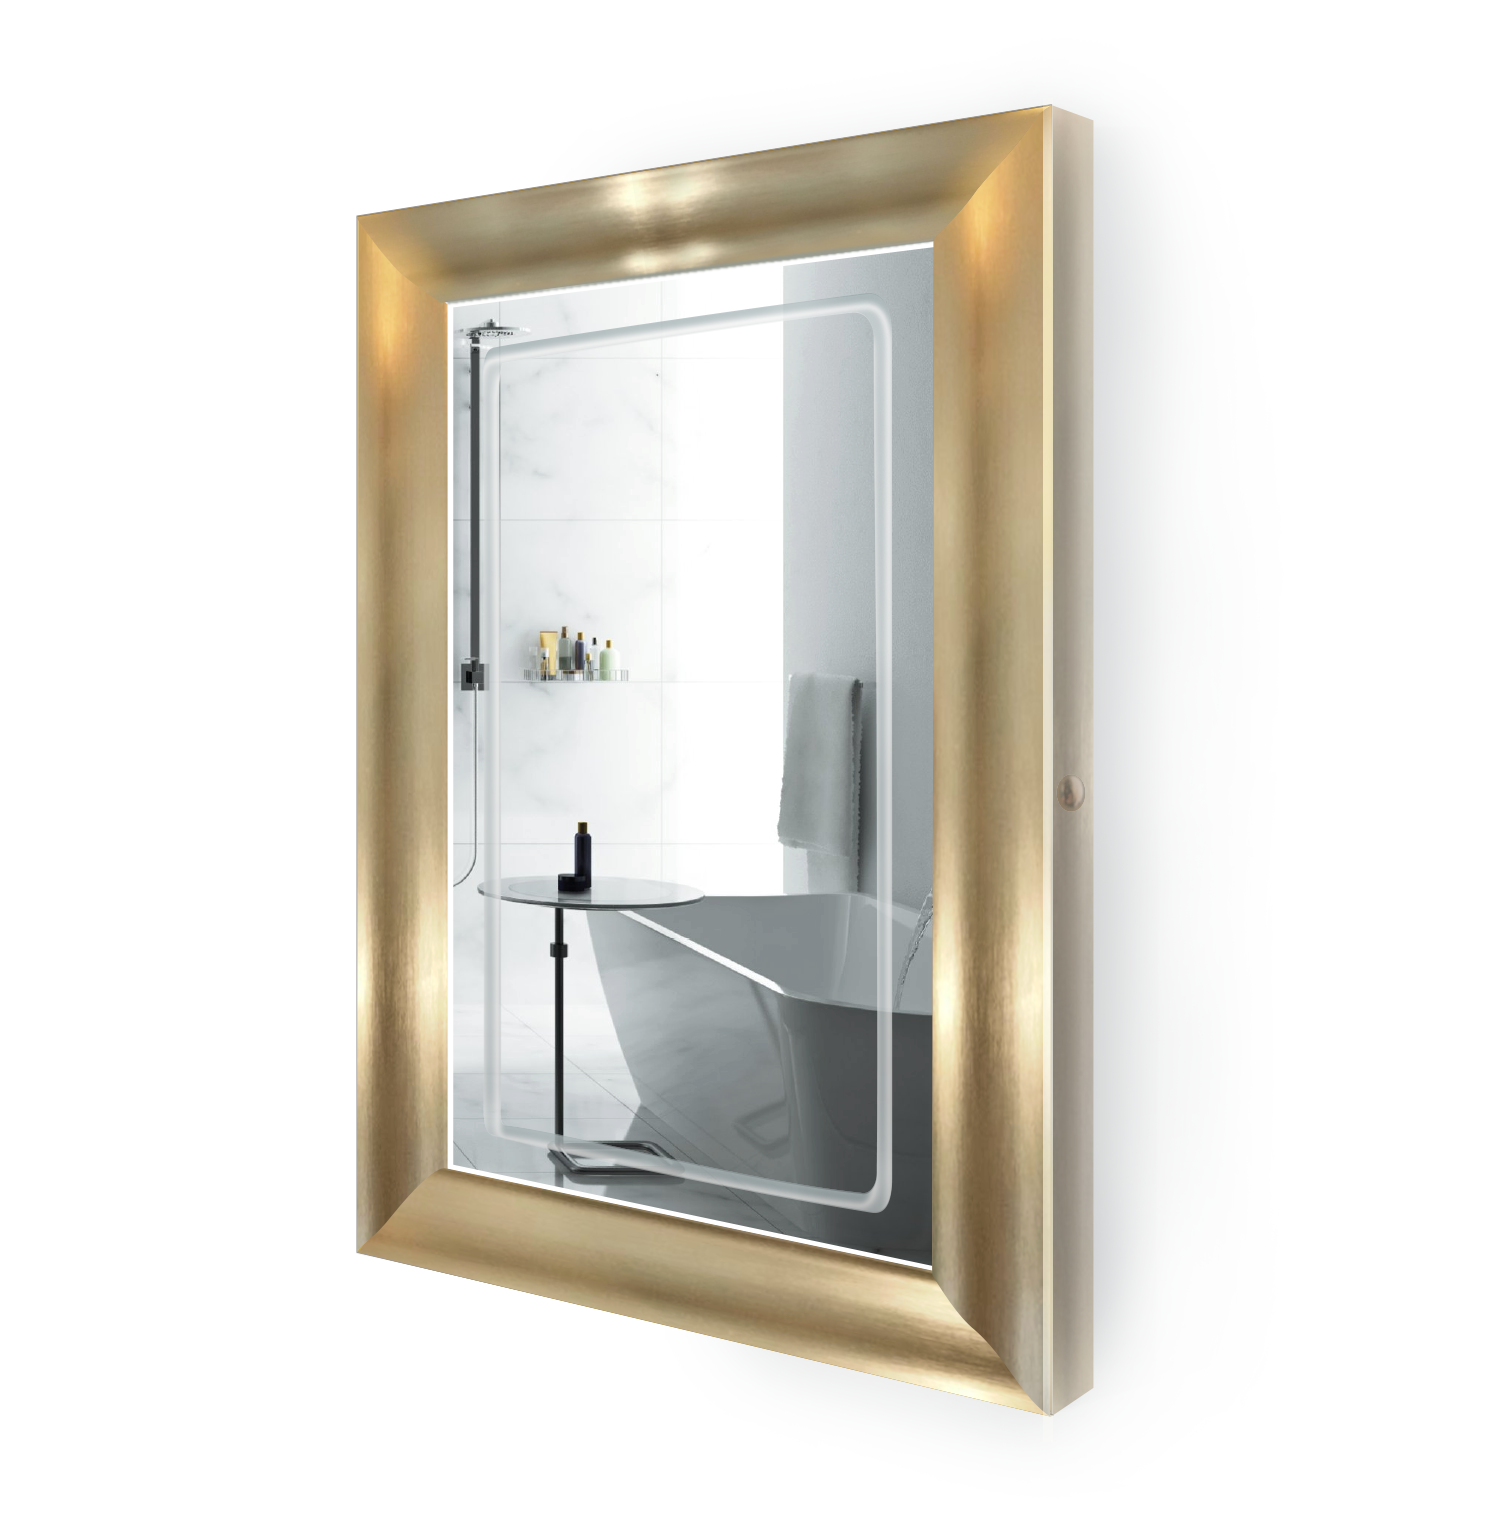 gold bathroom mirrors led lighted 24 inch x 36 inch bathroom gold frame mirror 12986